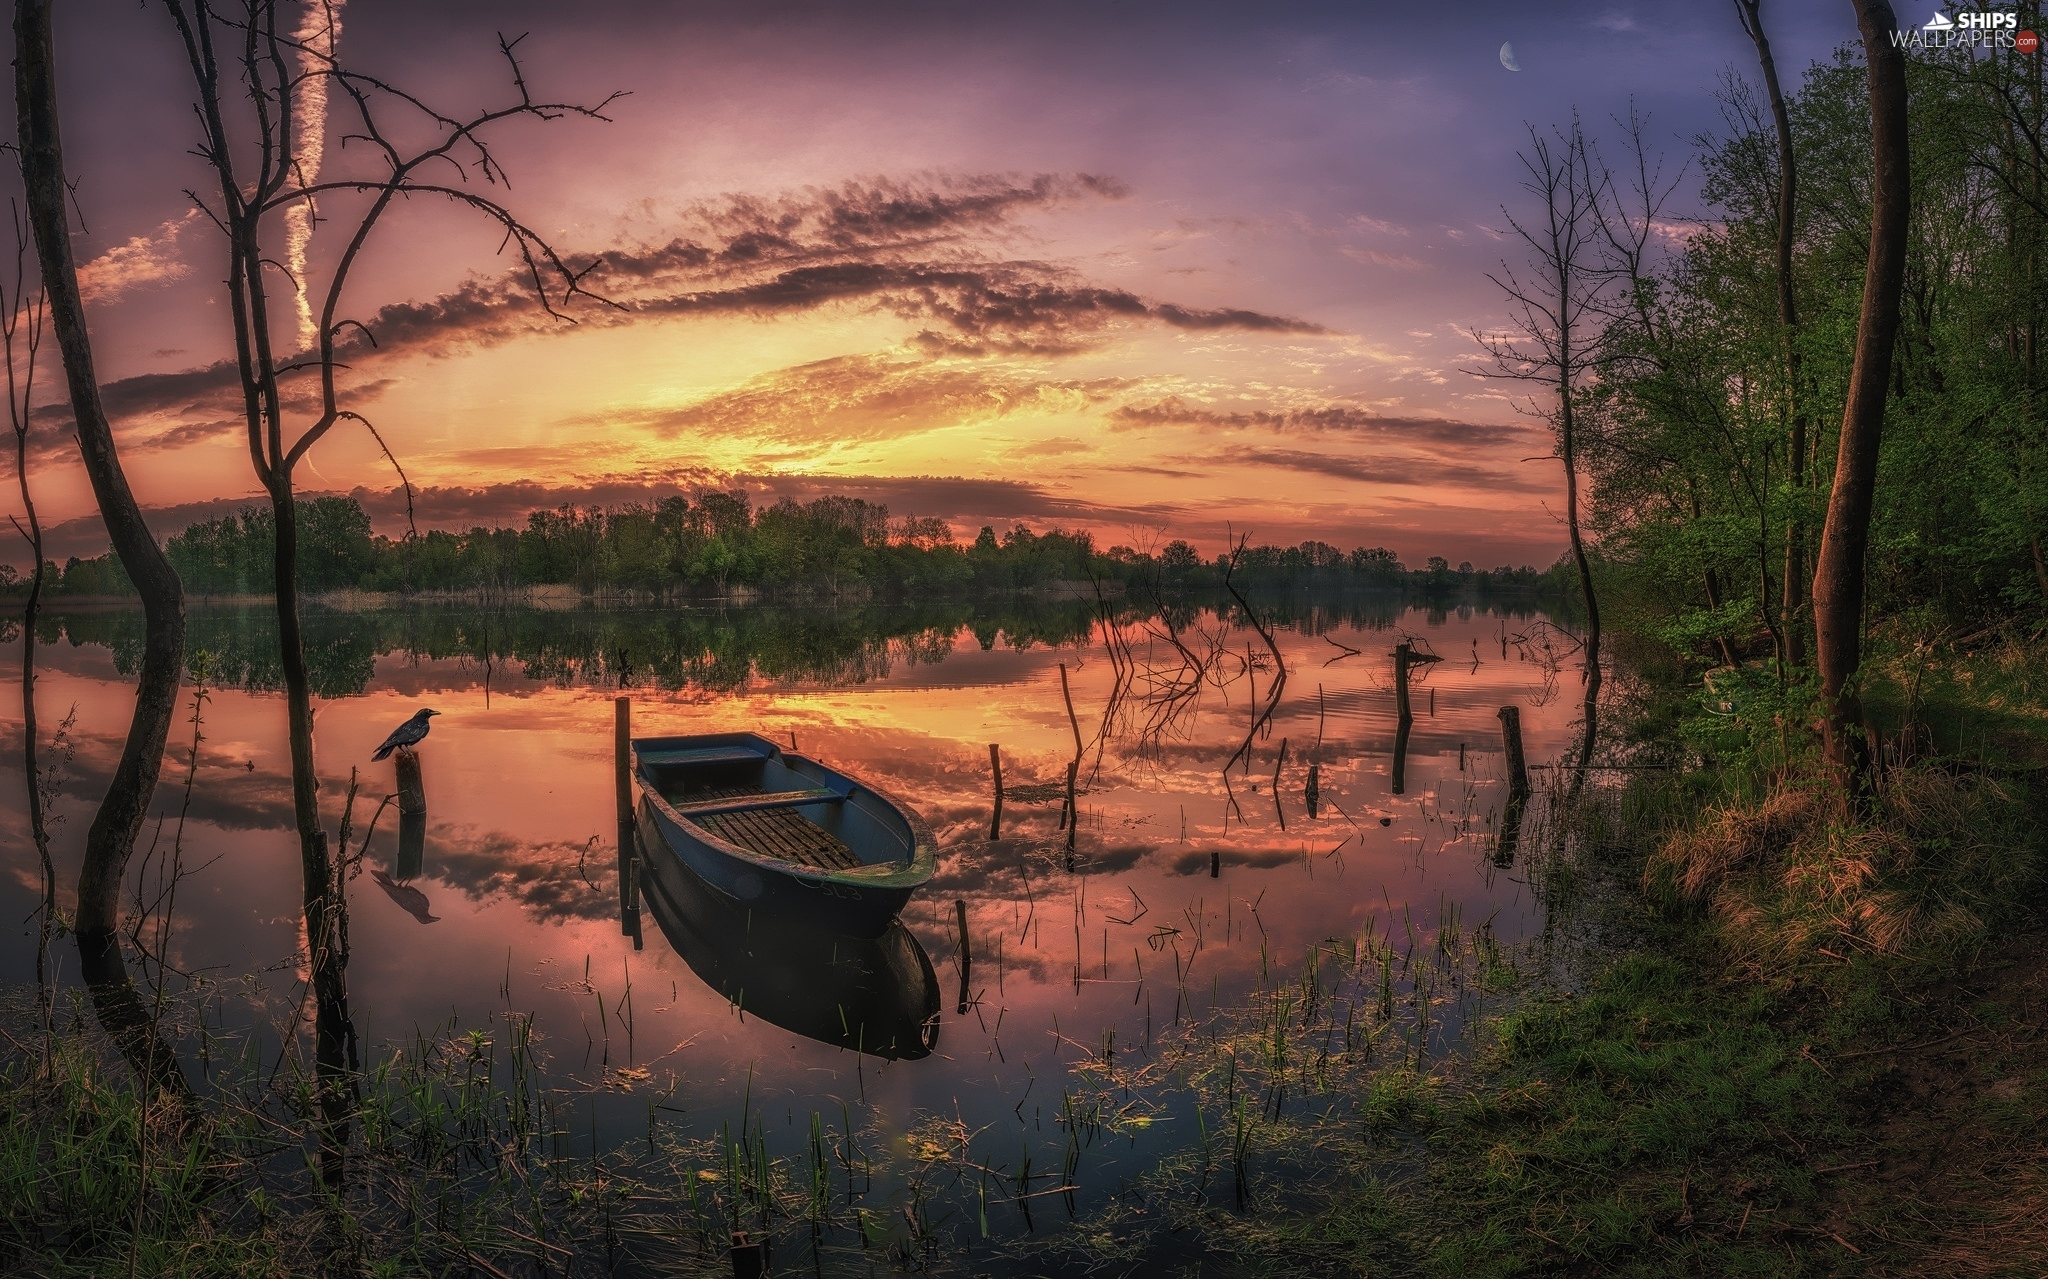 Boat, Great Sunsets, trees, viewes, lake